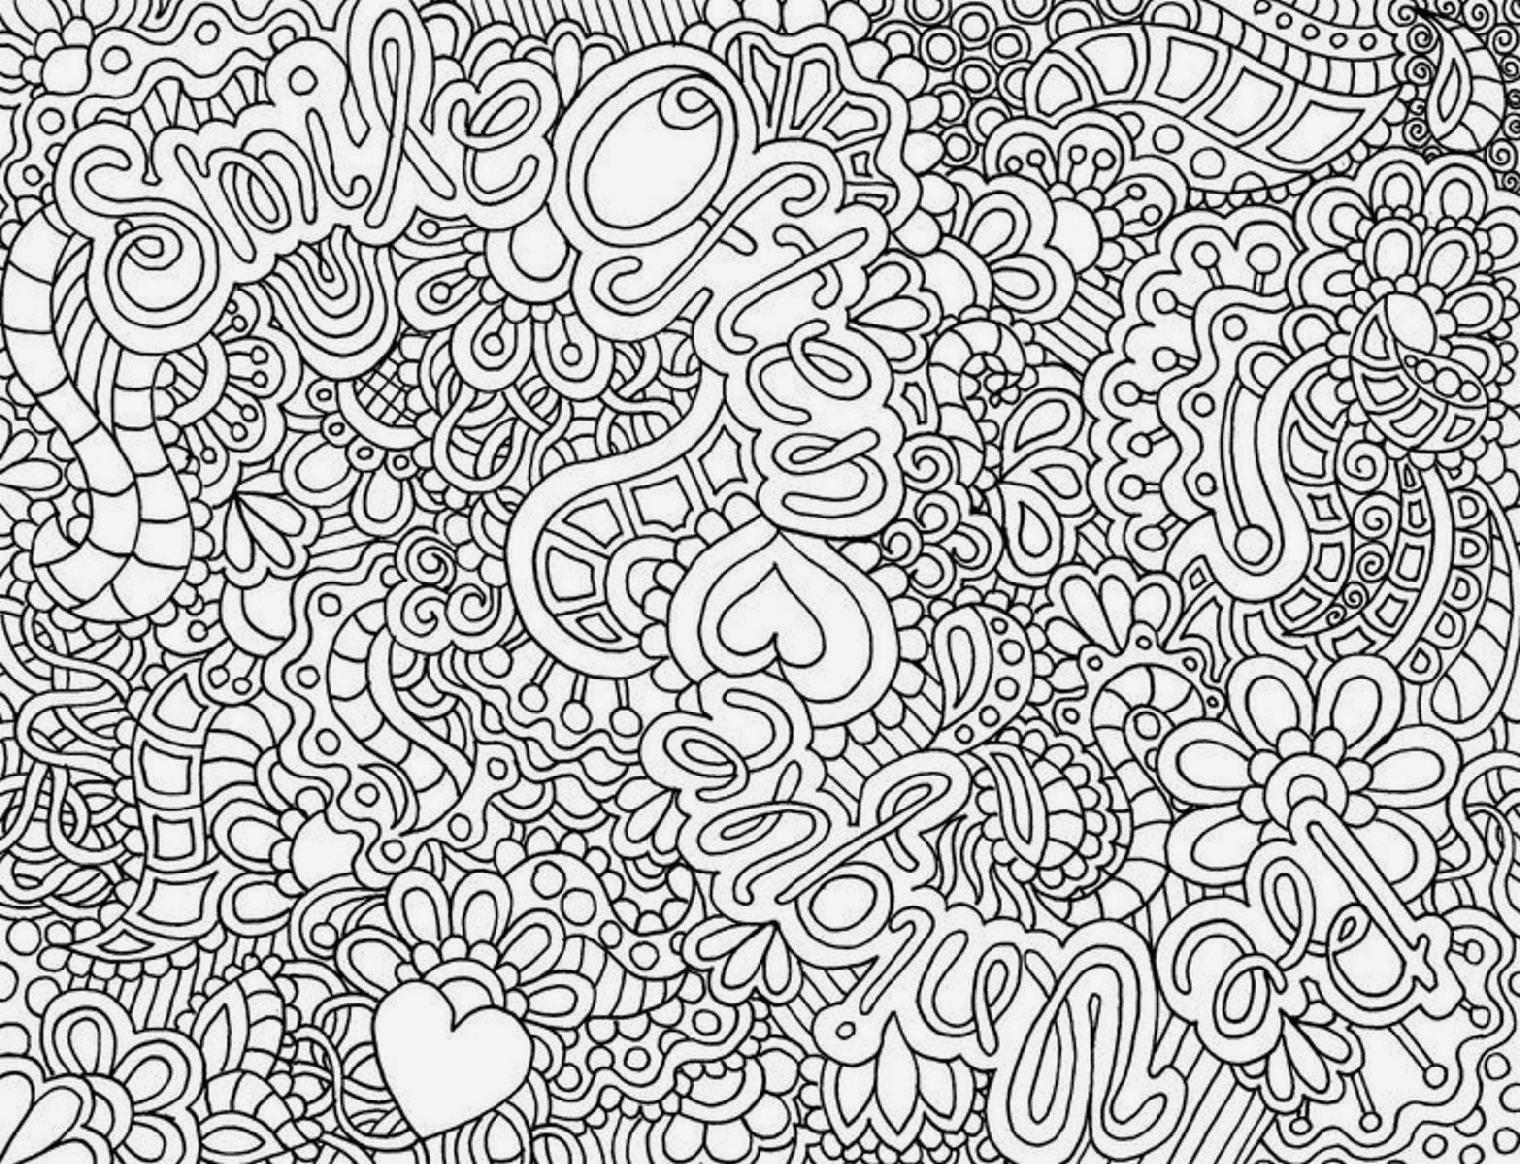 Smart Inspiration Coloring Pages For Grown Ups 3 Stunning Design